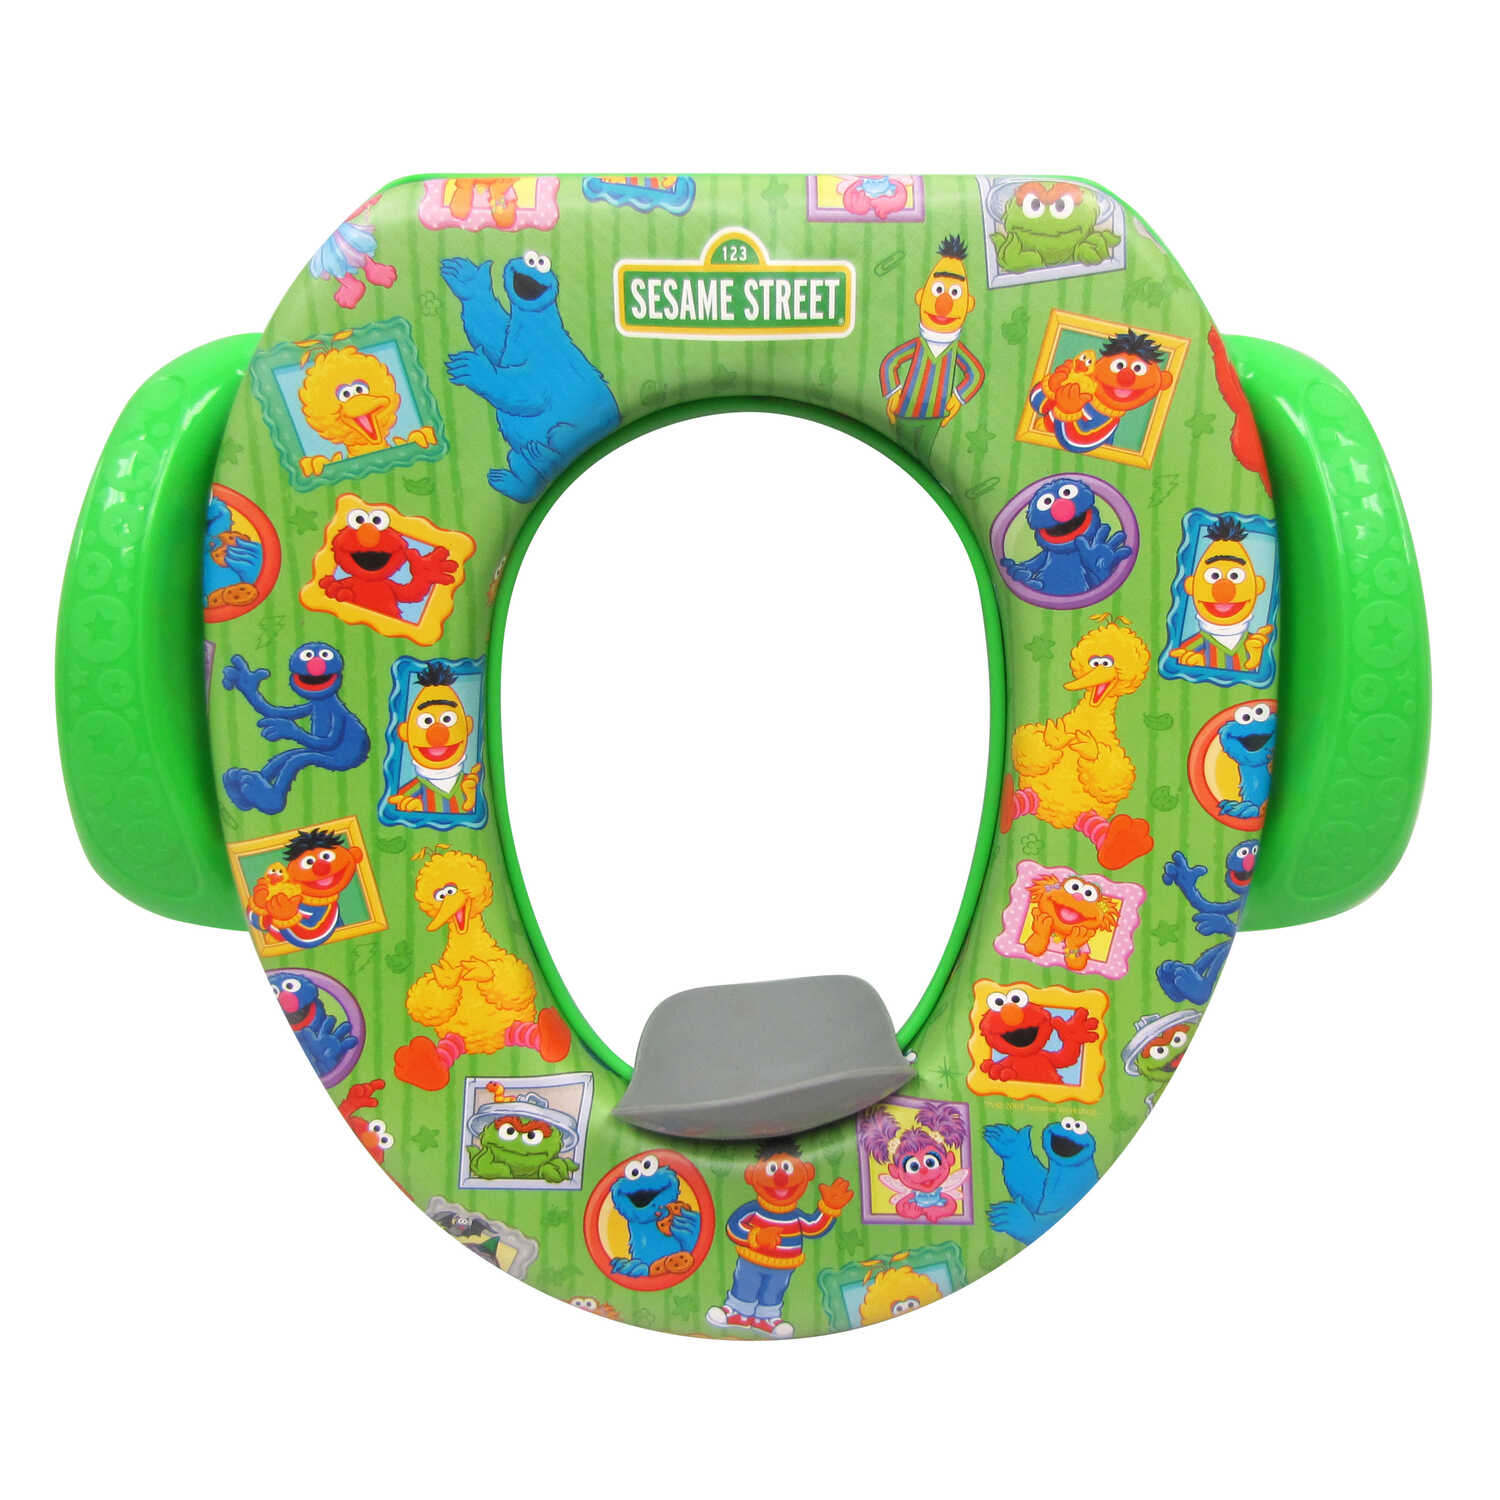 Ginsey  Sesame Street Framed Friends  Round  Soft  Child's Toilet Seat